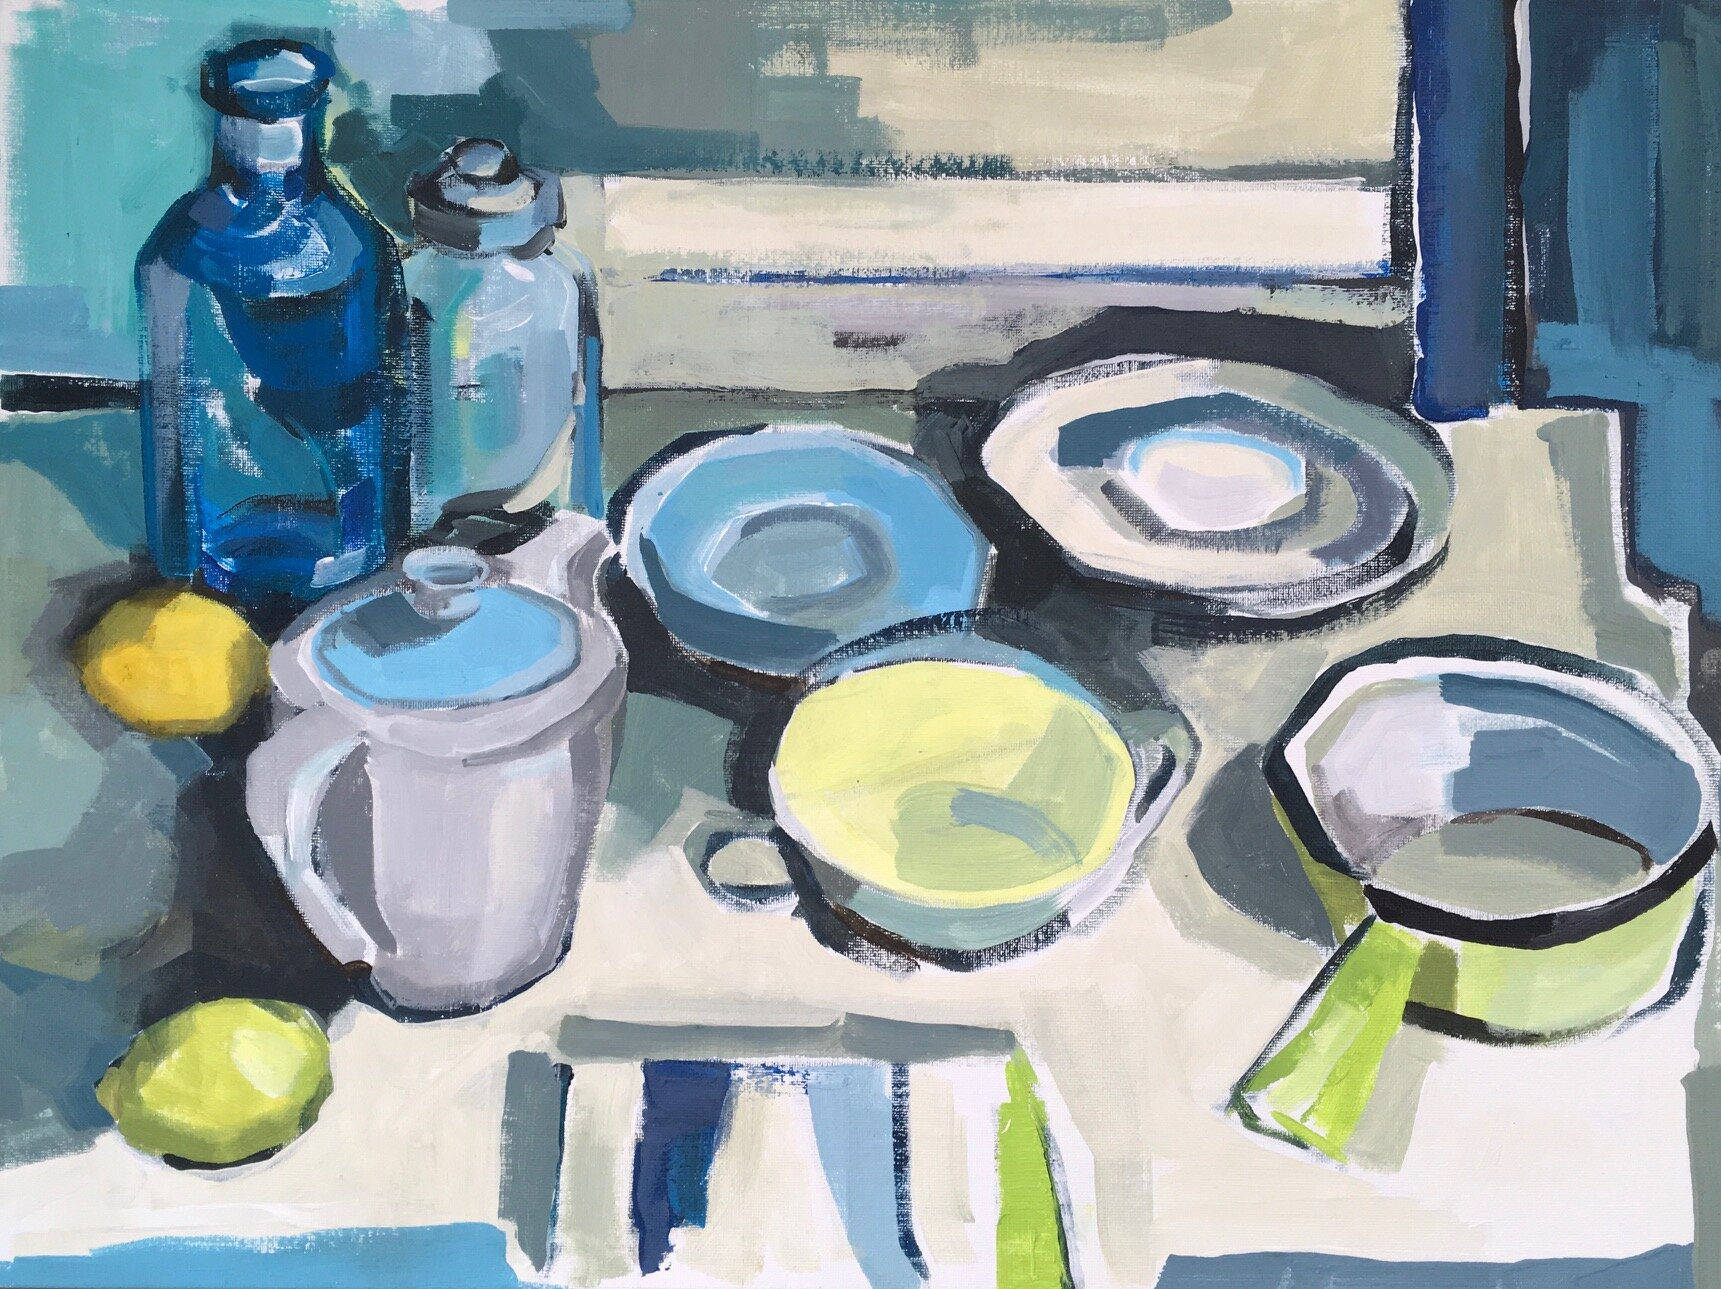 Artist: Kate Strachan  Title: Kitchen Sill Life with Poole Pottery & Saucepan  Size: 50 x 65 cm  Medium: Acrylic on board  Price: £850